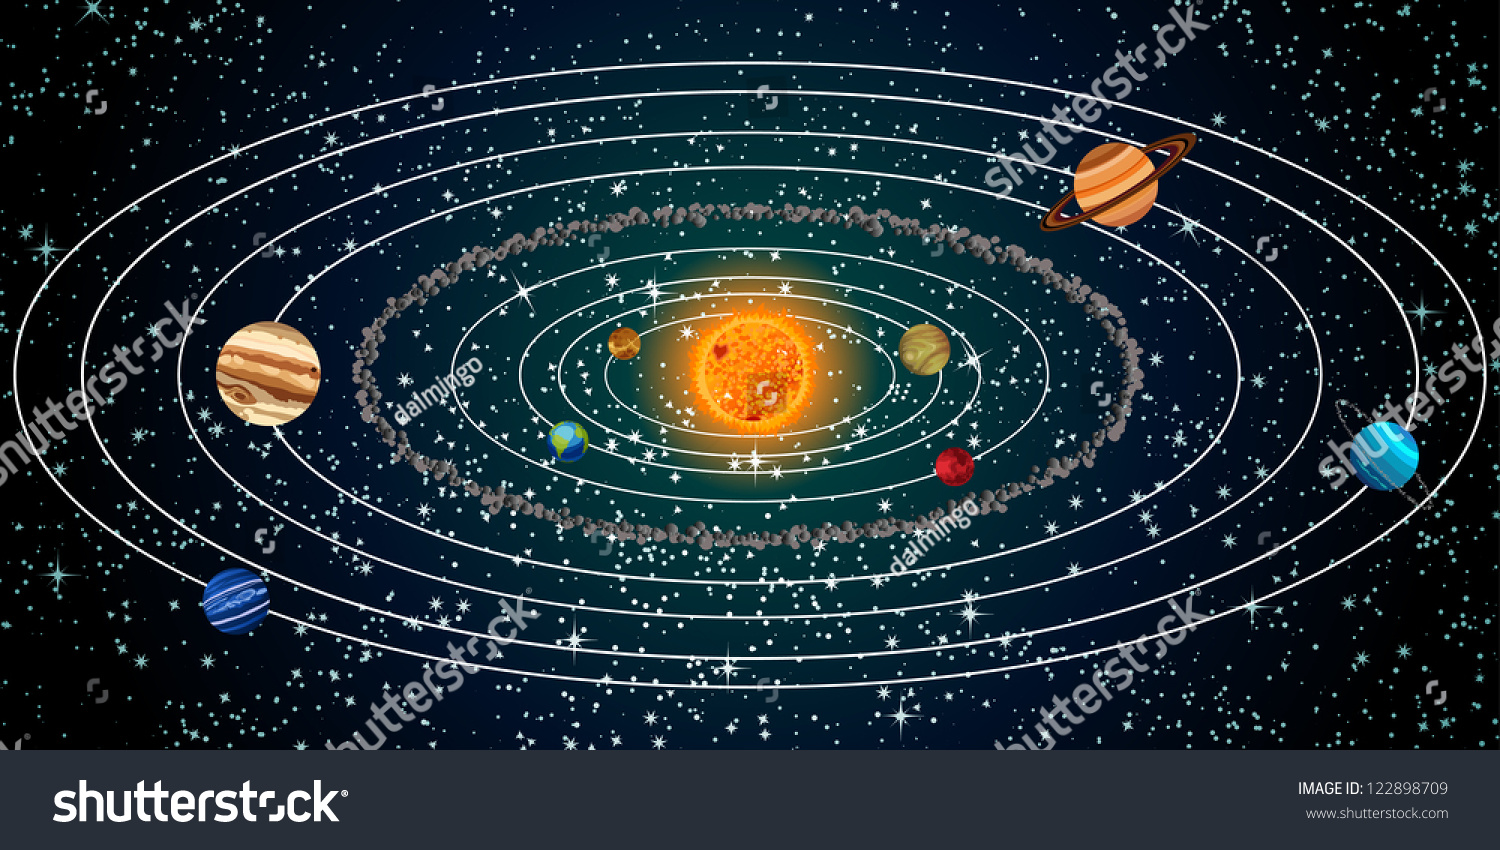 Planet ring vector